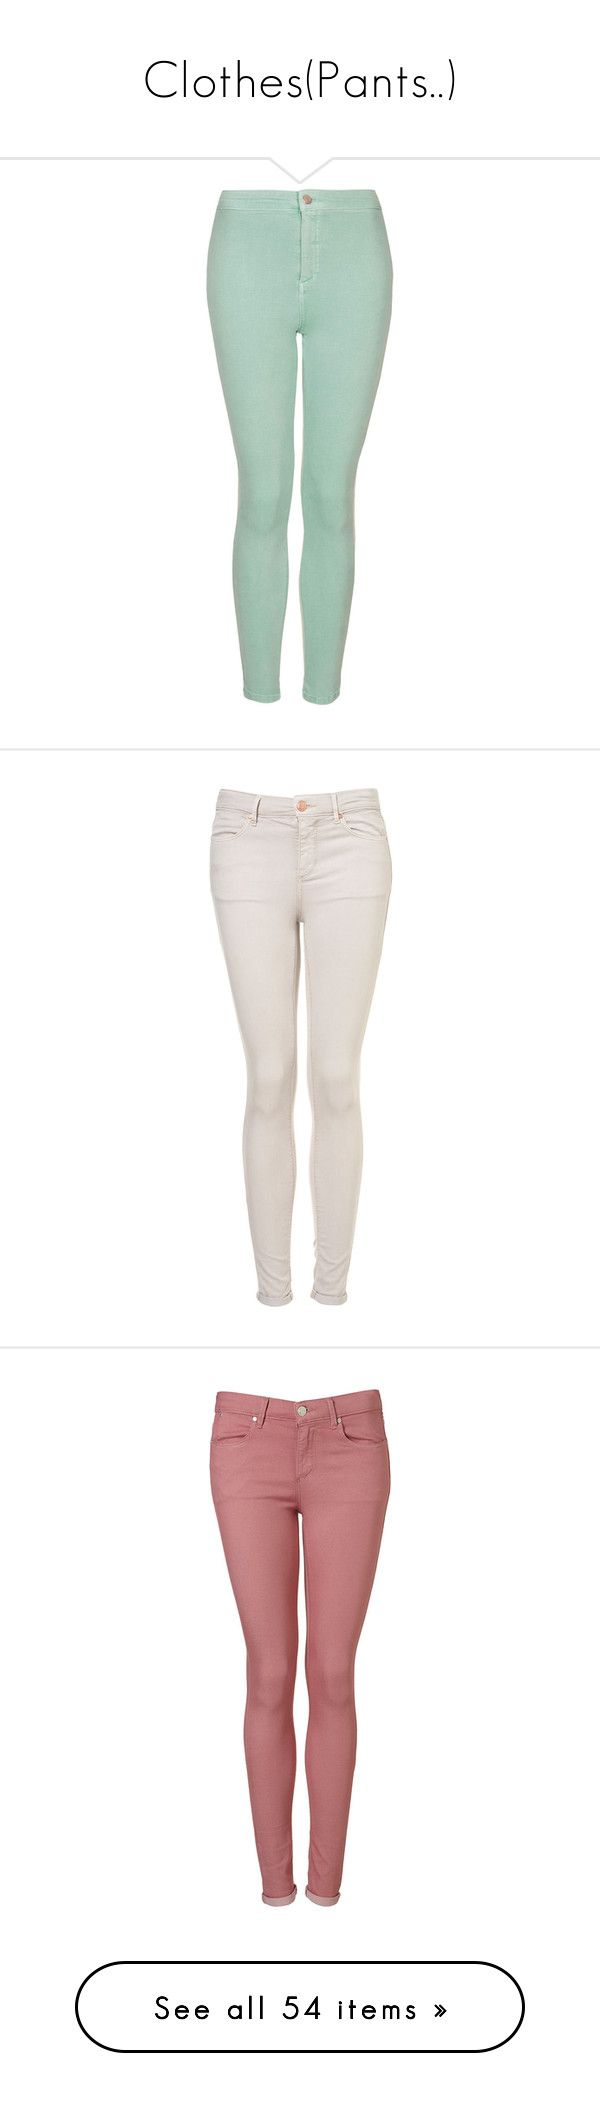 """Clothes(Pants..)"" by esther-rosa ❤ liked on Polyvore featuring jeans, pants, bottoms, pantalones, topshop, mint, checkered skinny jeans, high-waisted skinny jeans, mint green skinny jeans and green skinny jeans"